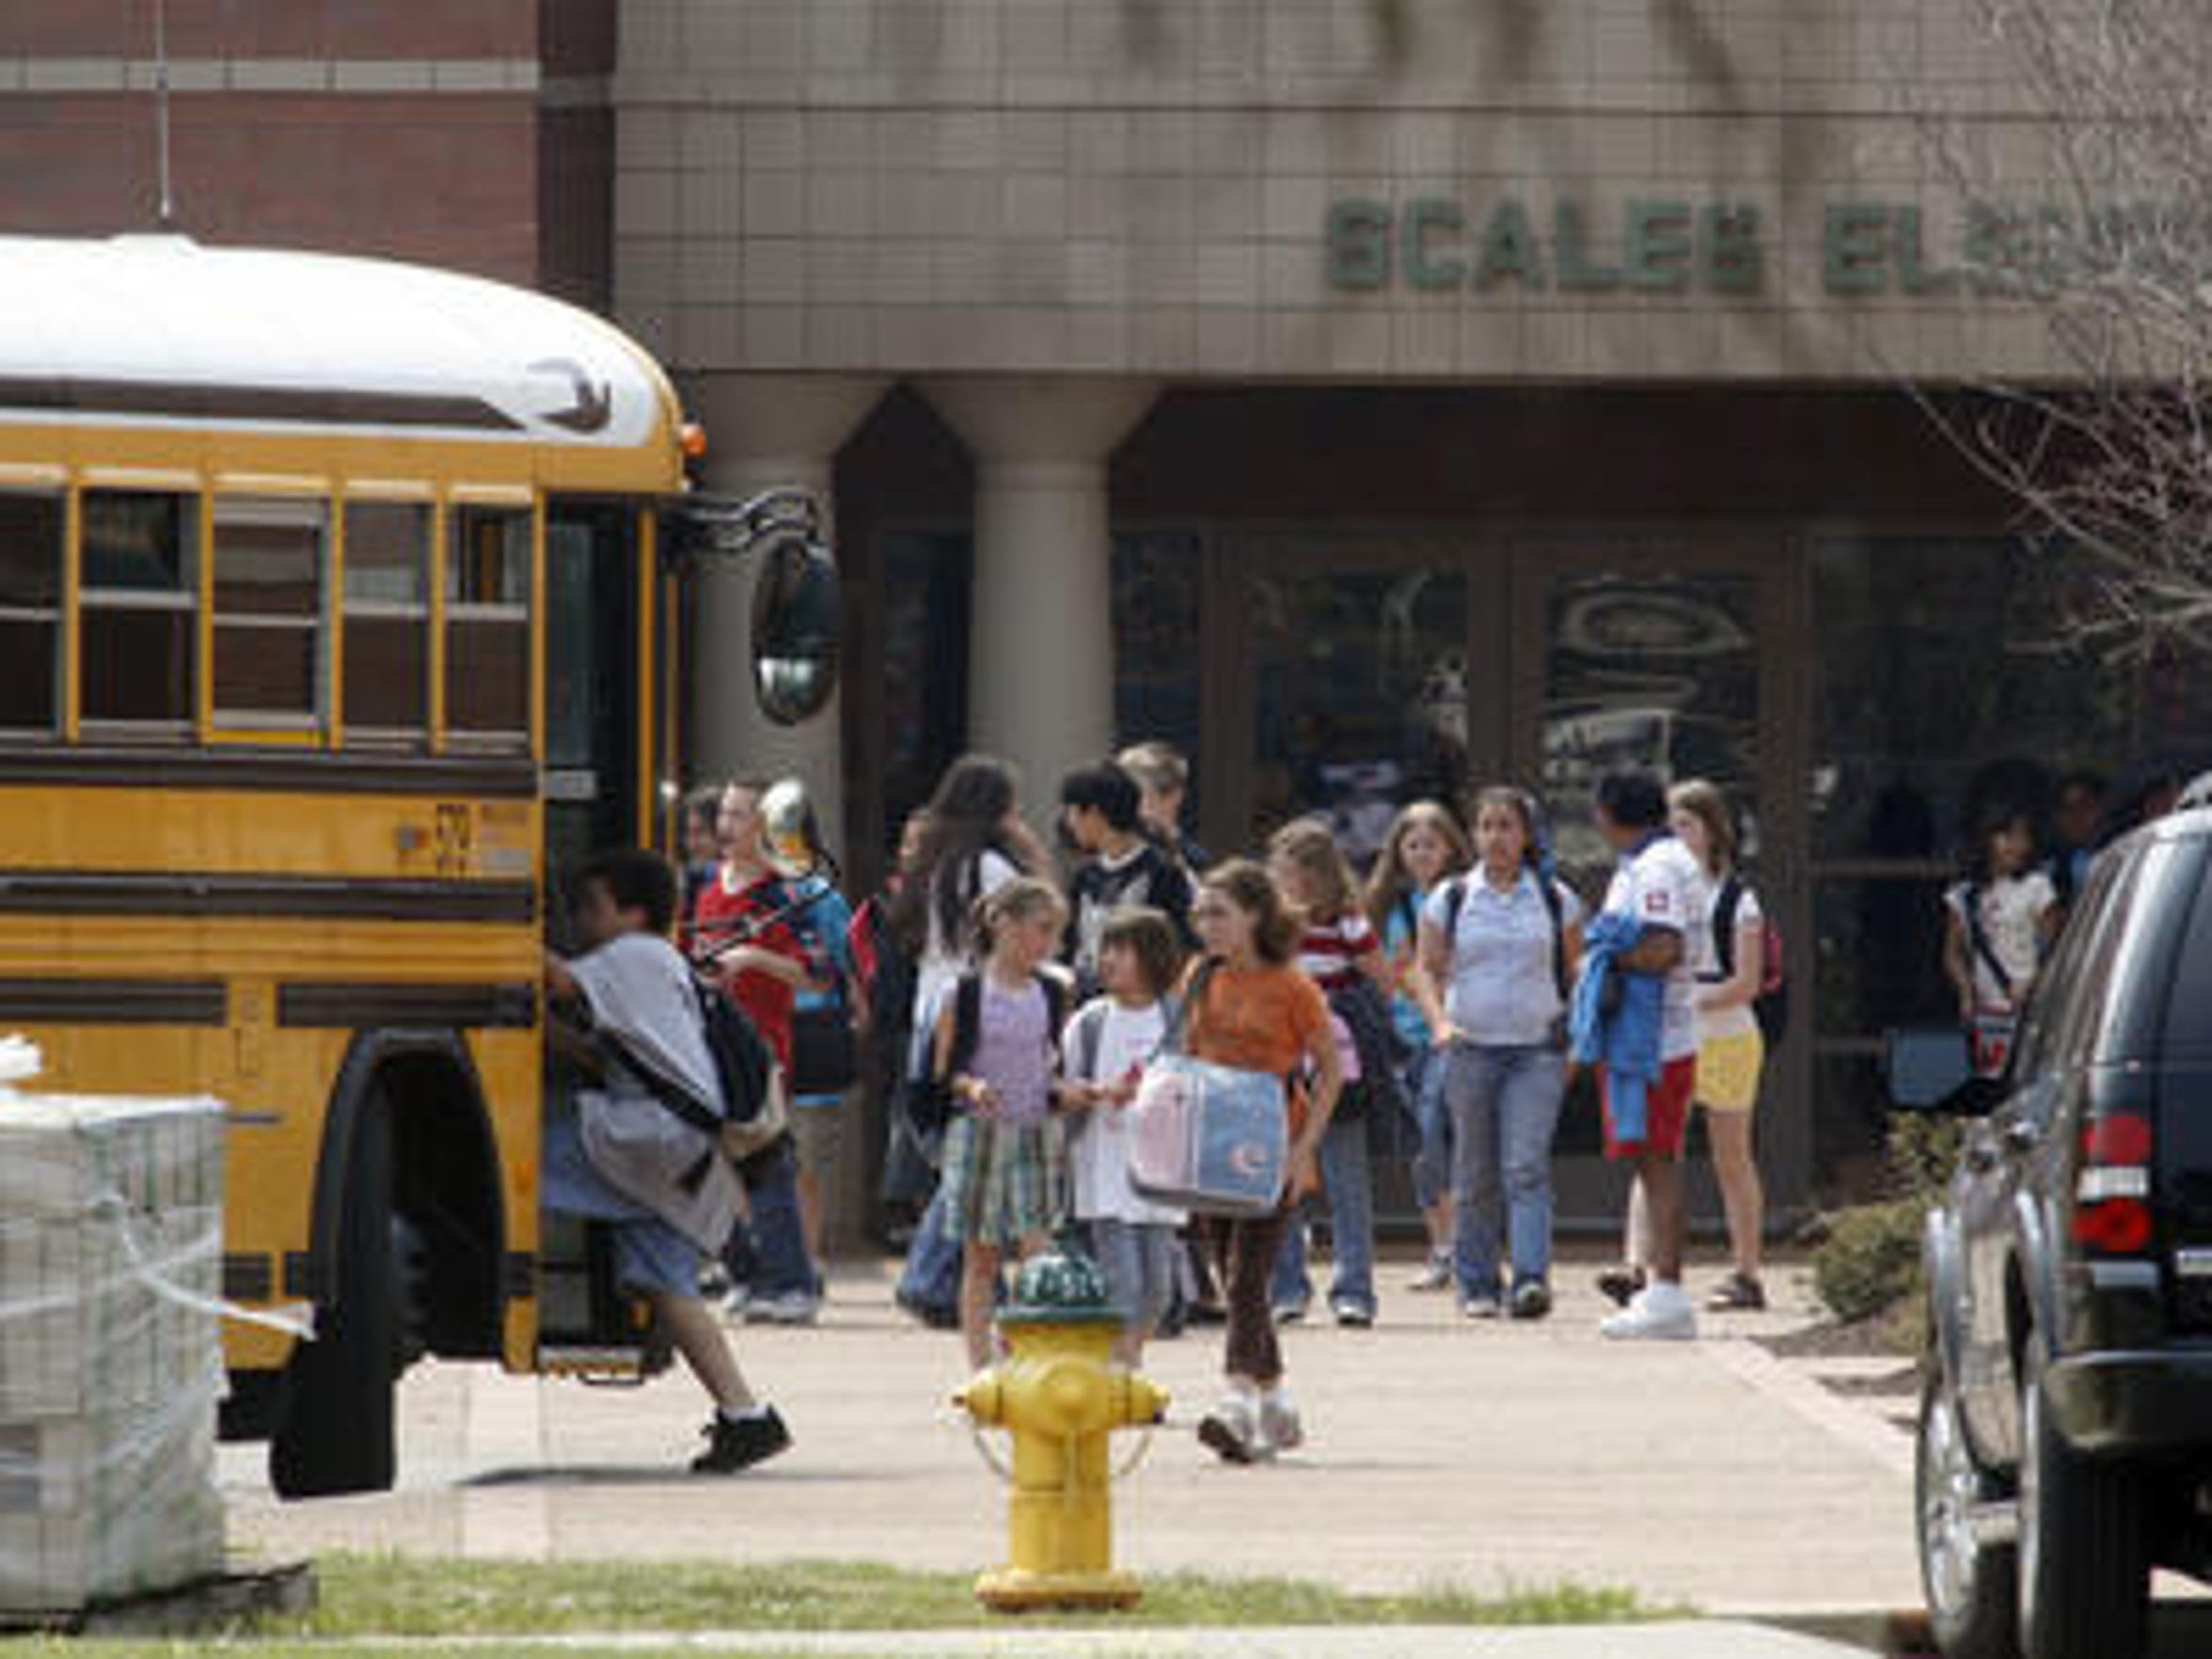 This file photo shows students at Scales Elementary School leaving the campus at dismissal time.